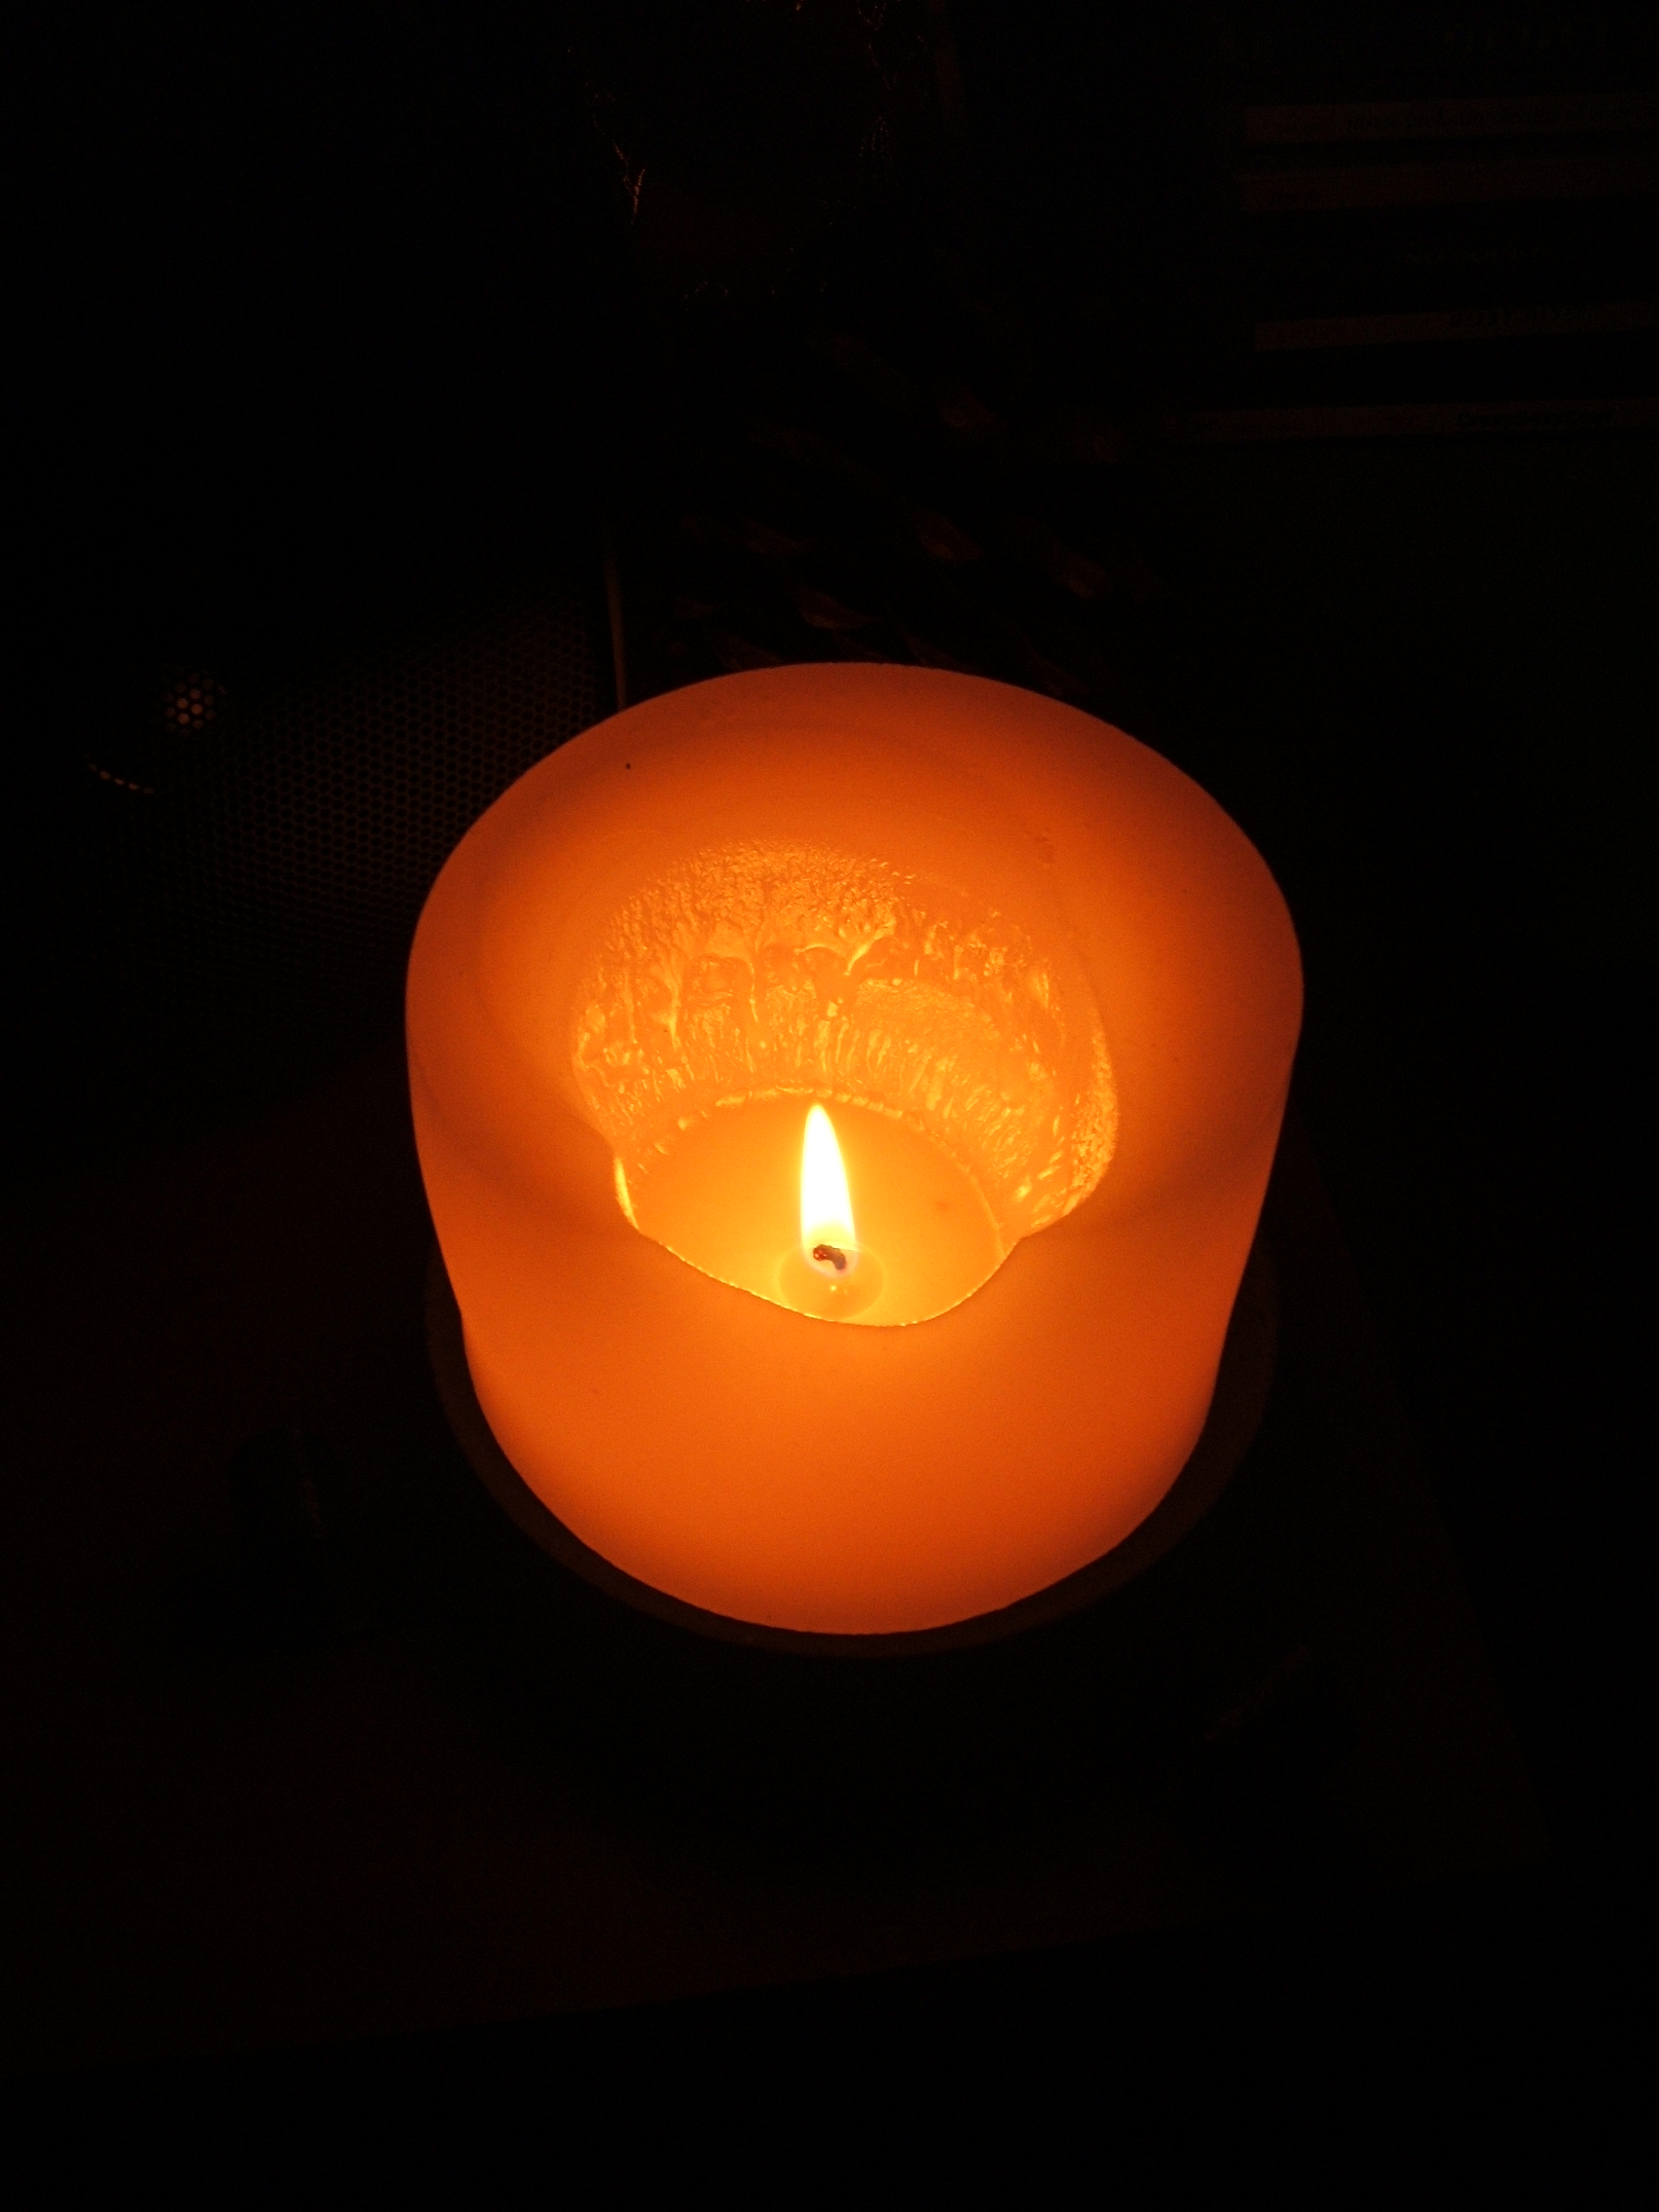 https://i2.wp.com/upload.wikimedia.org/wikipedia/commons/8/81/Candle_1.jpg